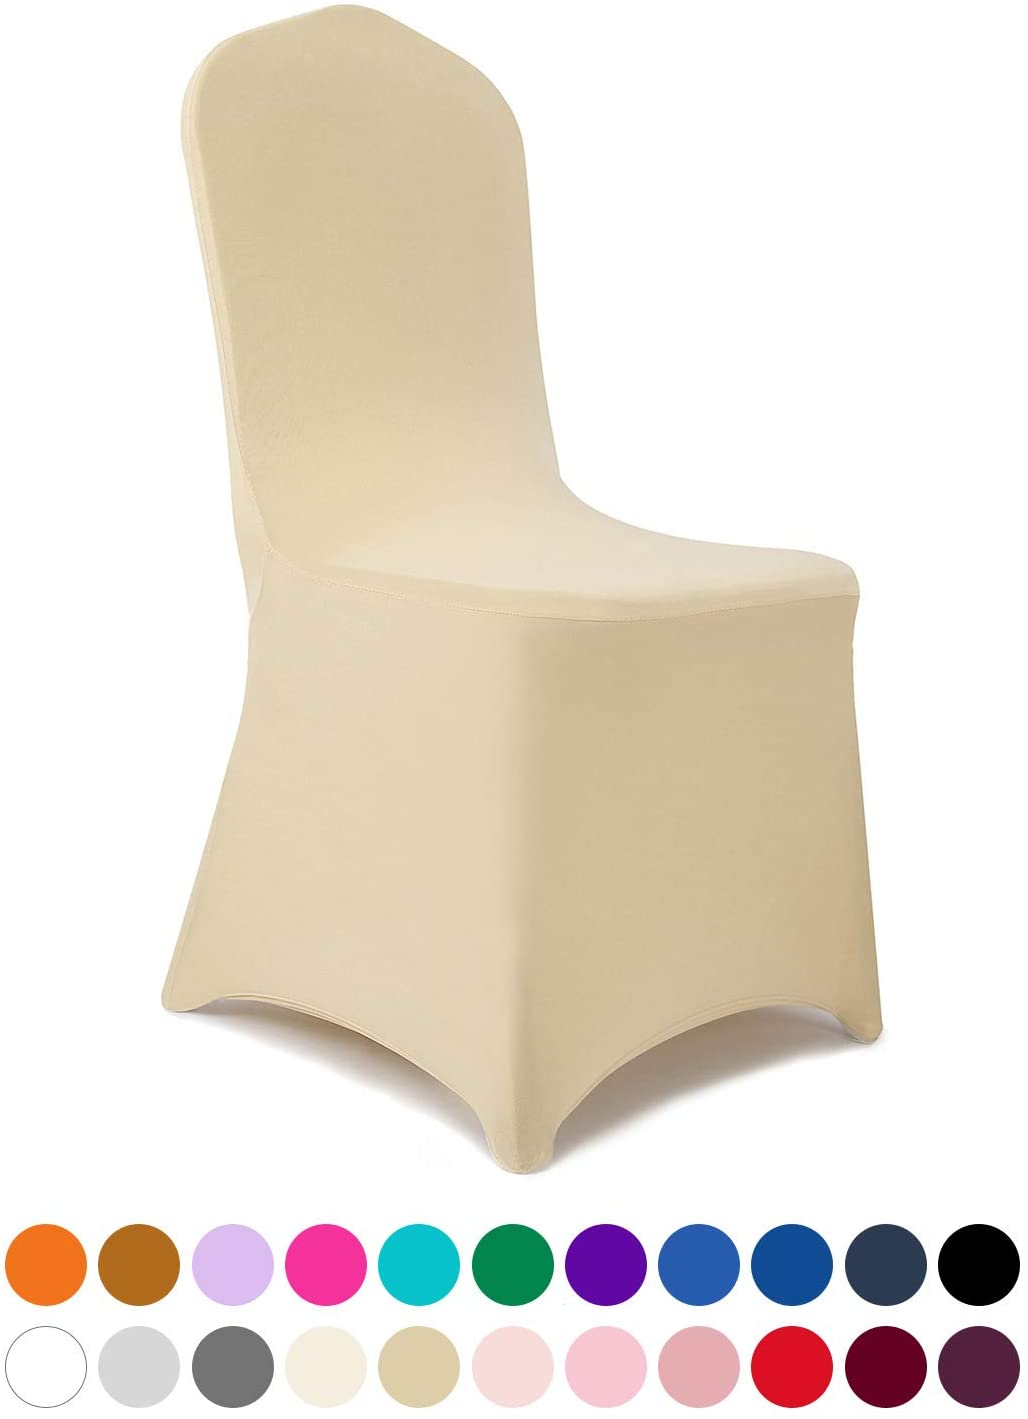 Peomeise 12pcs Stretch Spandex Chair Cover for Wedding Party Dining Banquet Event (Champagne, 12)